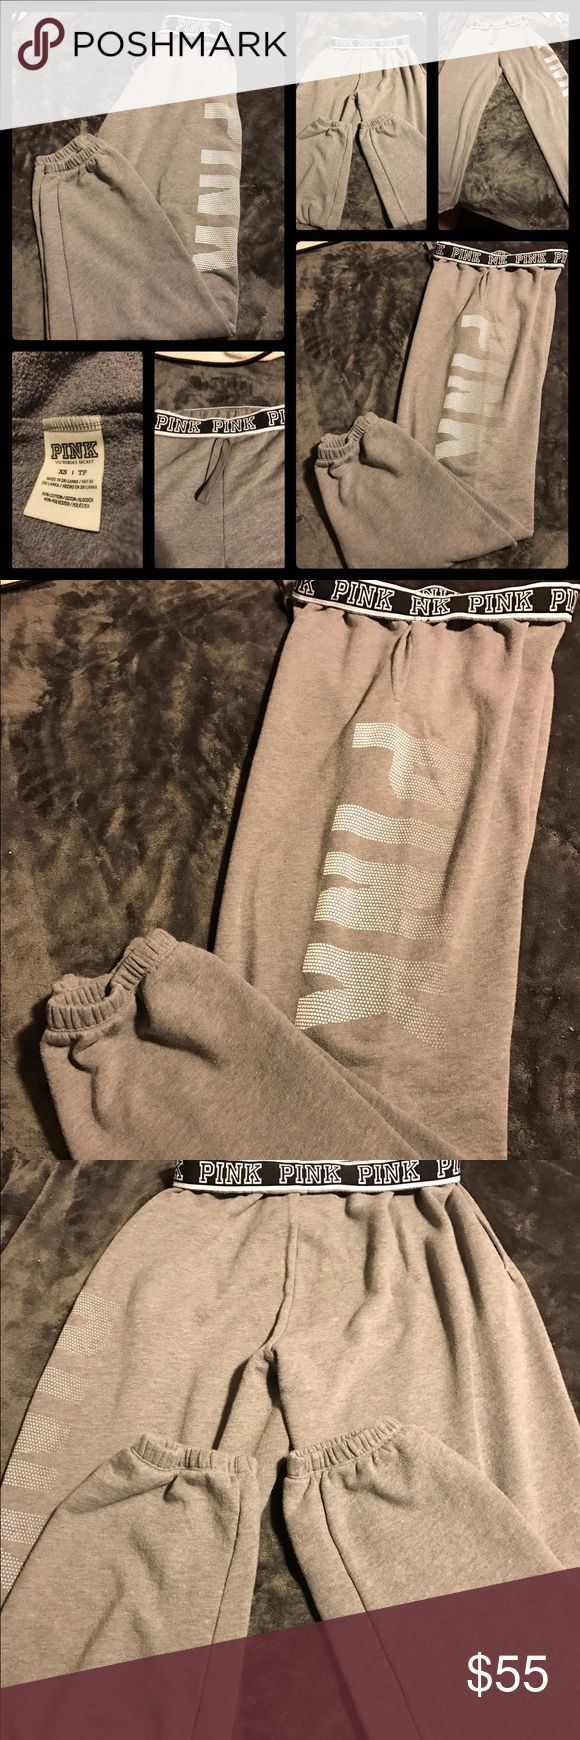 Like New Pink Victoria'sSecret Gray Sweatpants Like new Pink Victoria'sSecret gray sweatpants with PINK in white dots going down left leg.  2 front pockets.  Fold over waistband that's says PINK in white letters all around.  I think these are Campus pants but not sure.  No trades.  Will price drop. PINK Victoria's Secret Pants Track Pants & Joggers